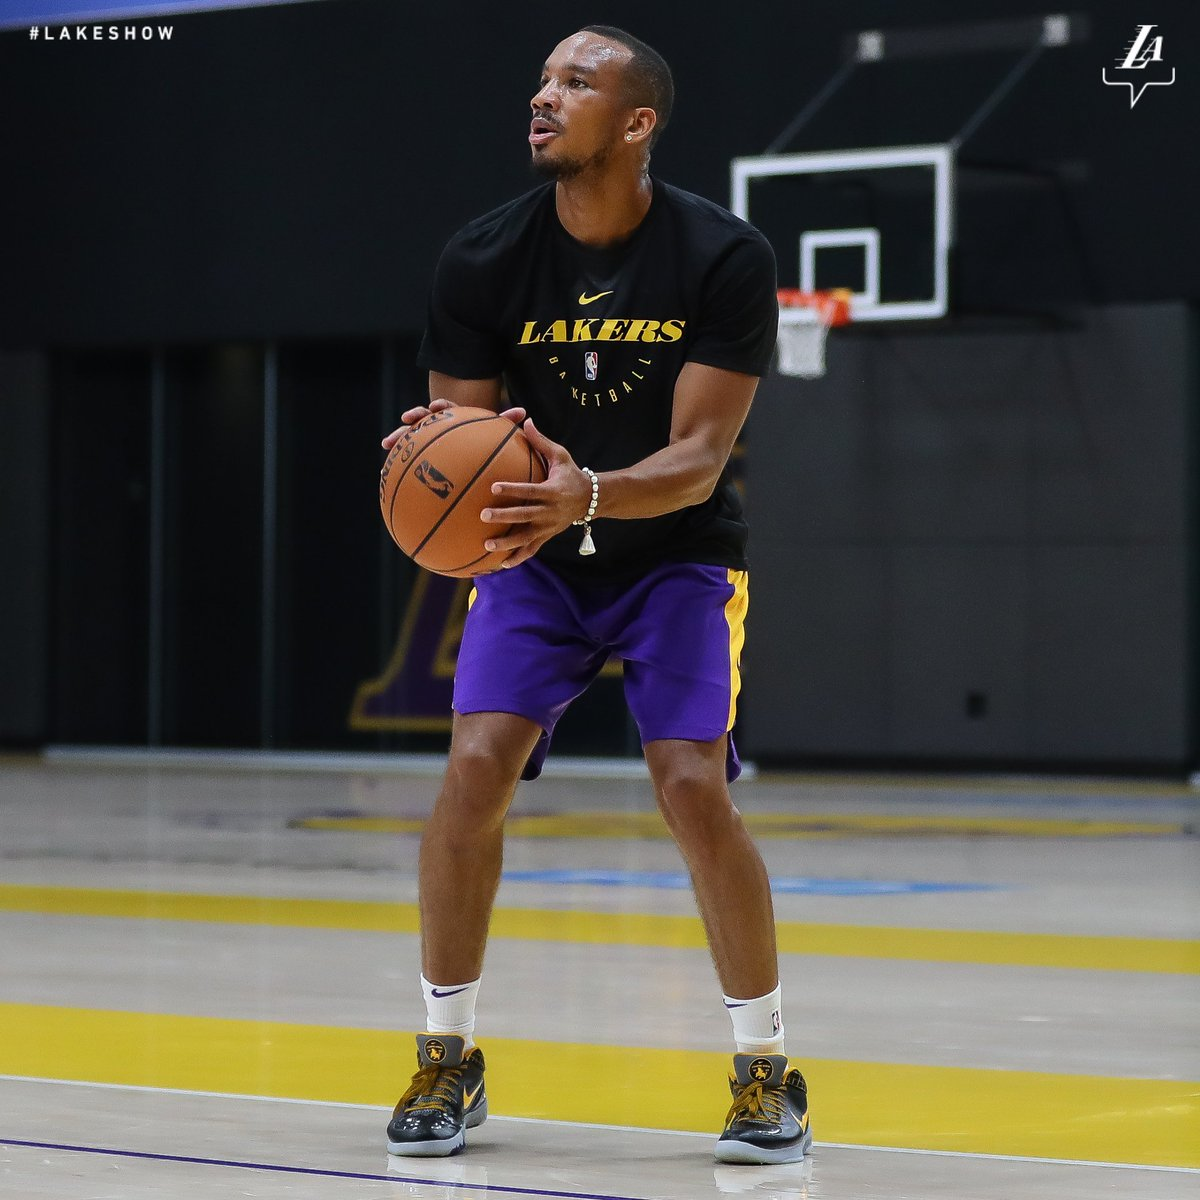 Great energy in the lab today #LakeShow